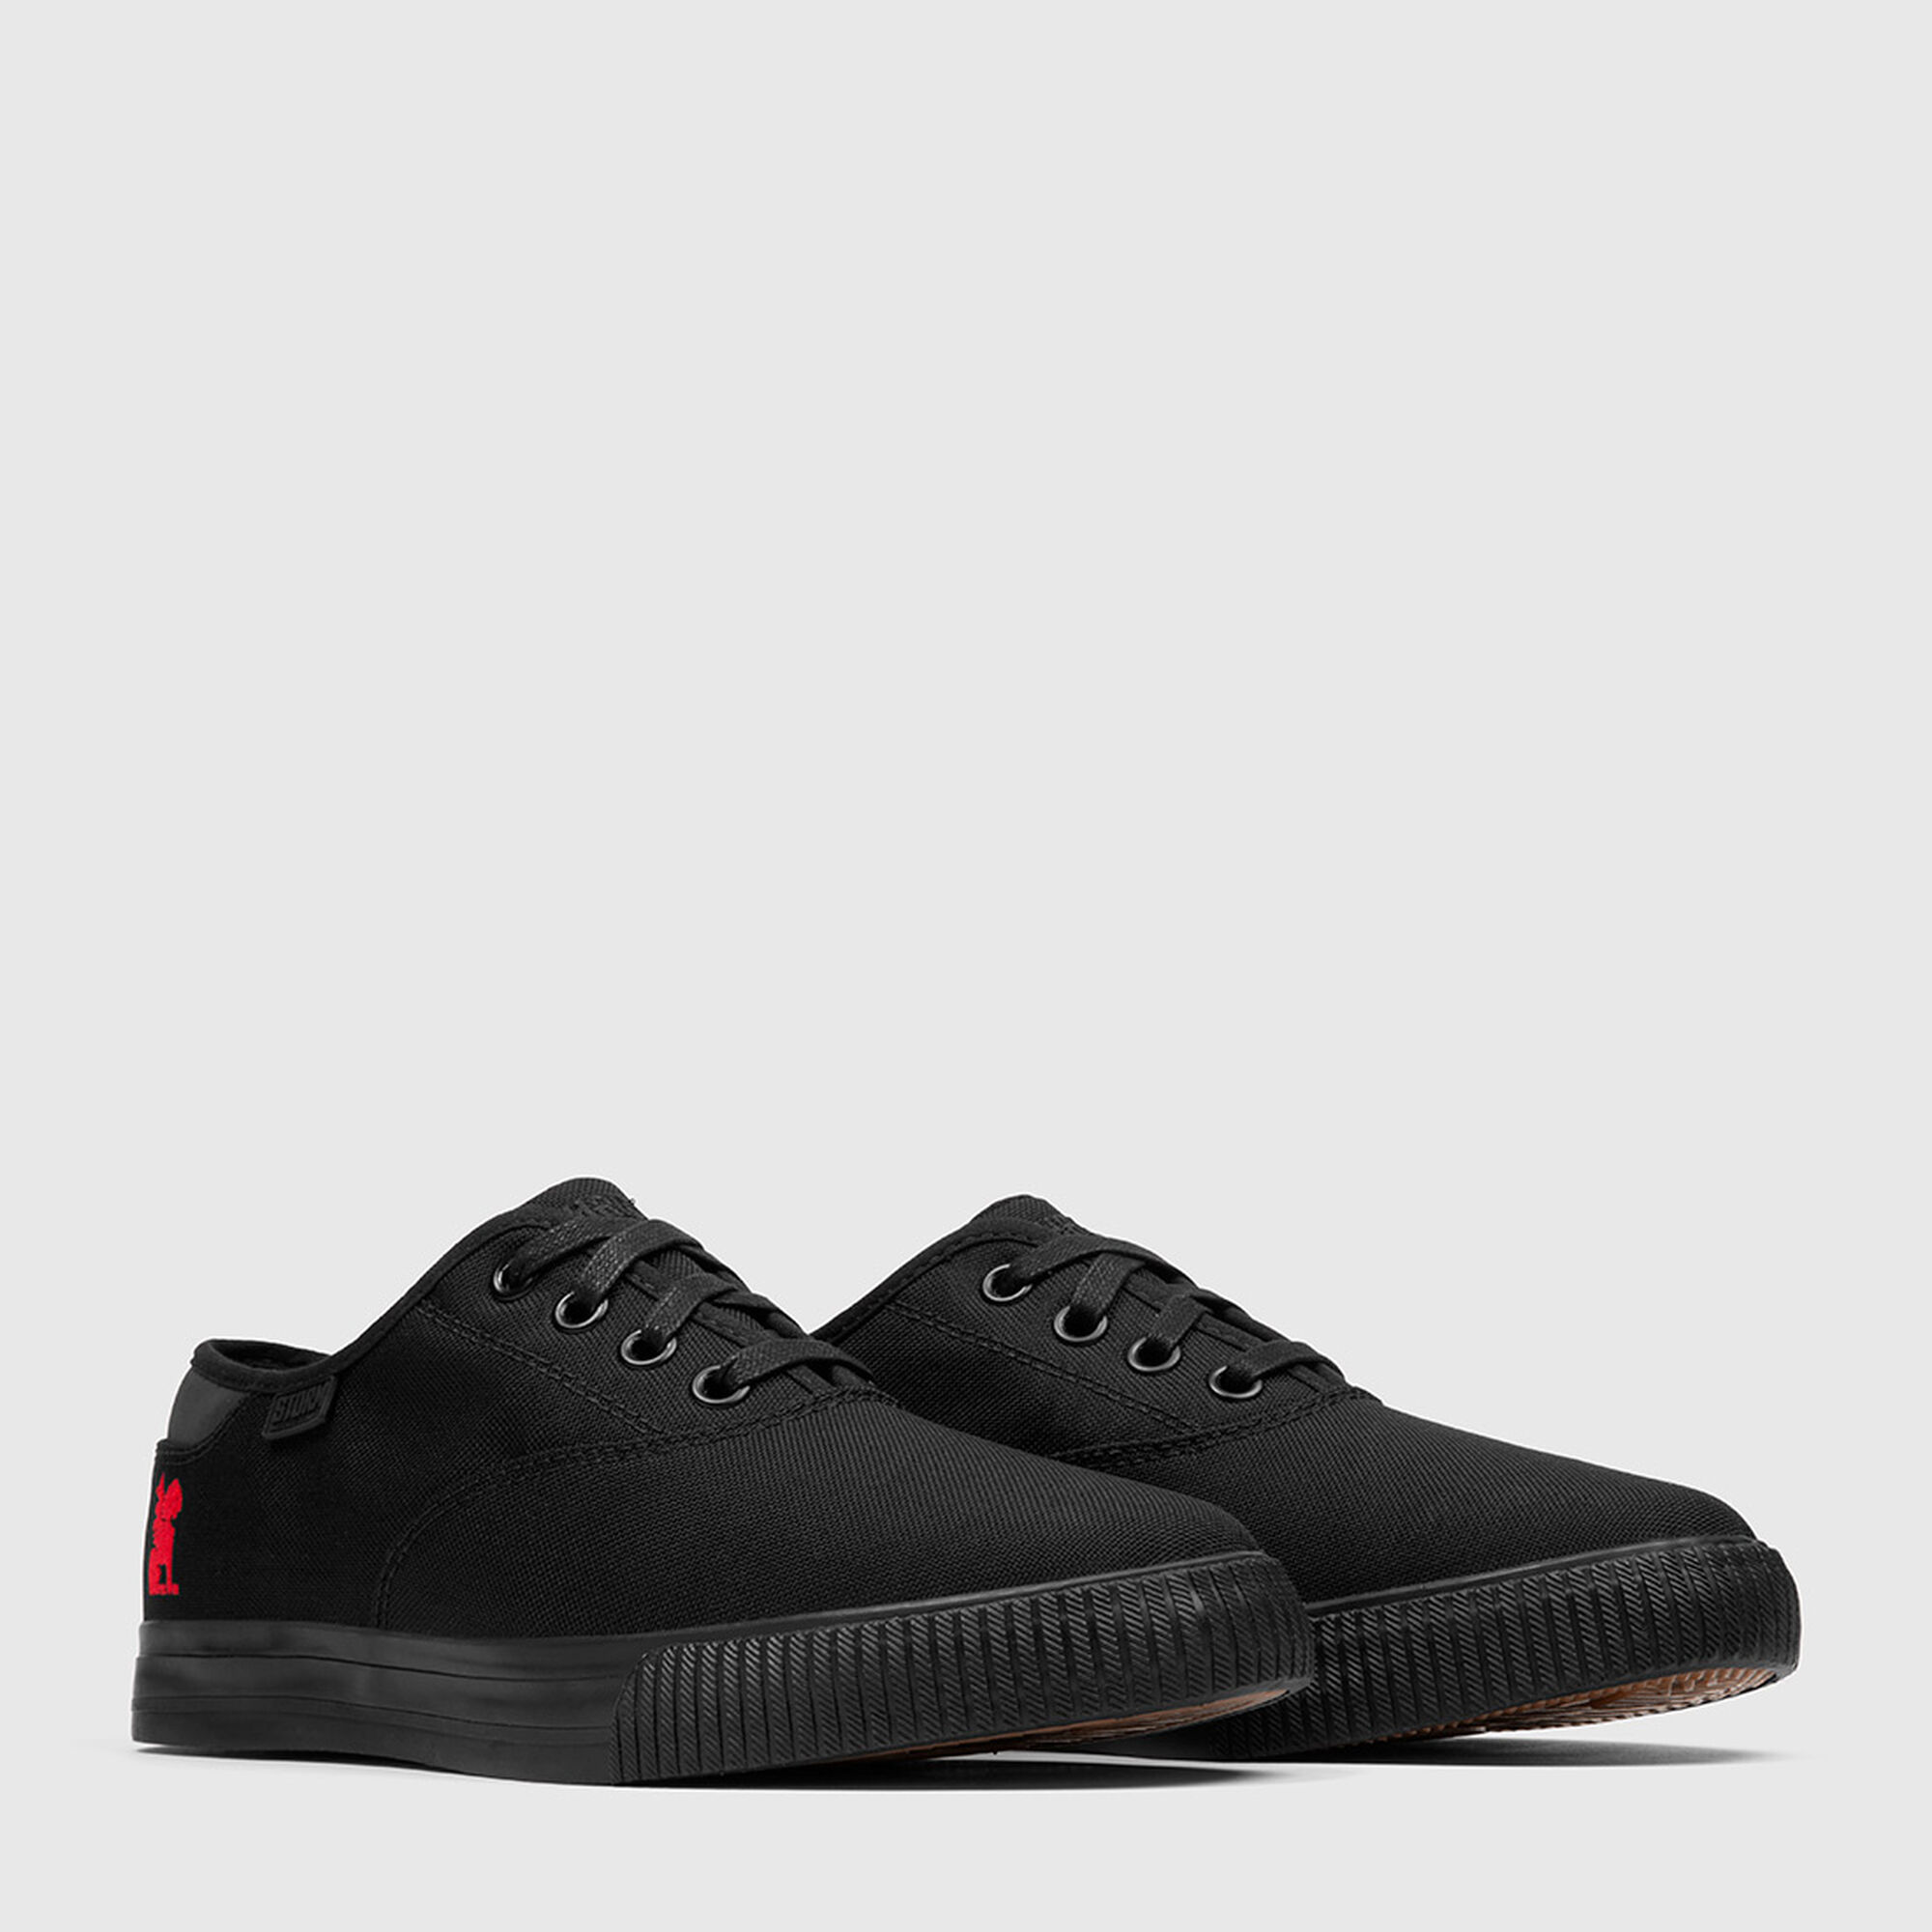 Storm Truk Bike Shoe Tough Kicks Chrome Industries D Island Shoes Slip On New Driving Comfort Leather Black In Small View